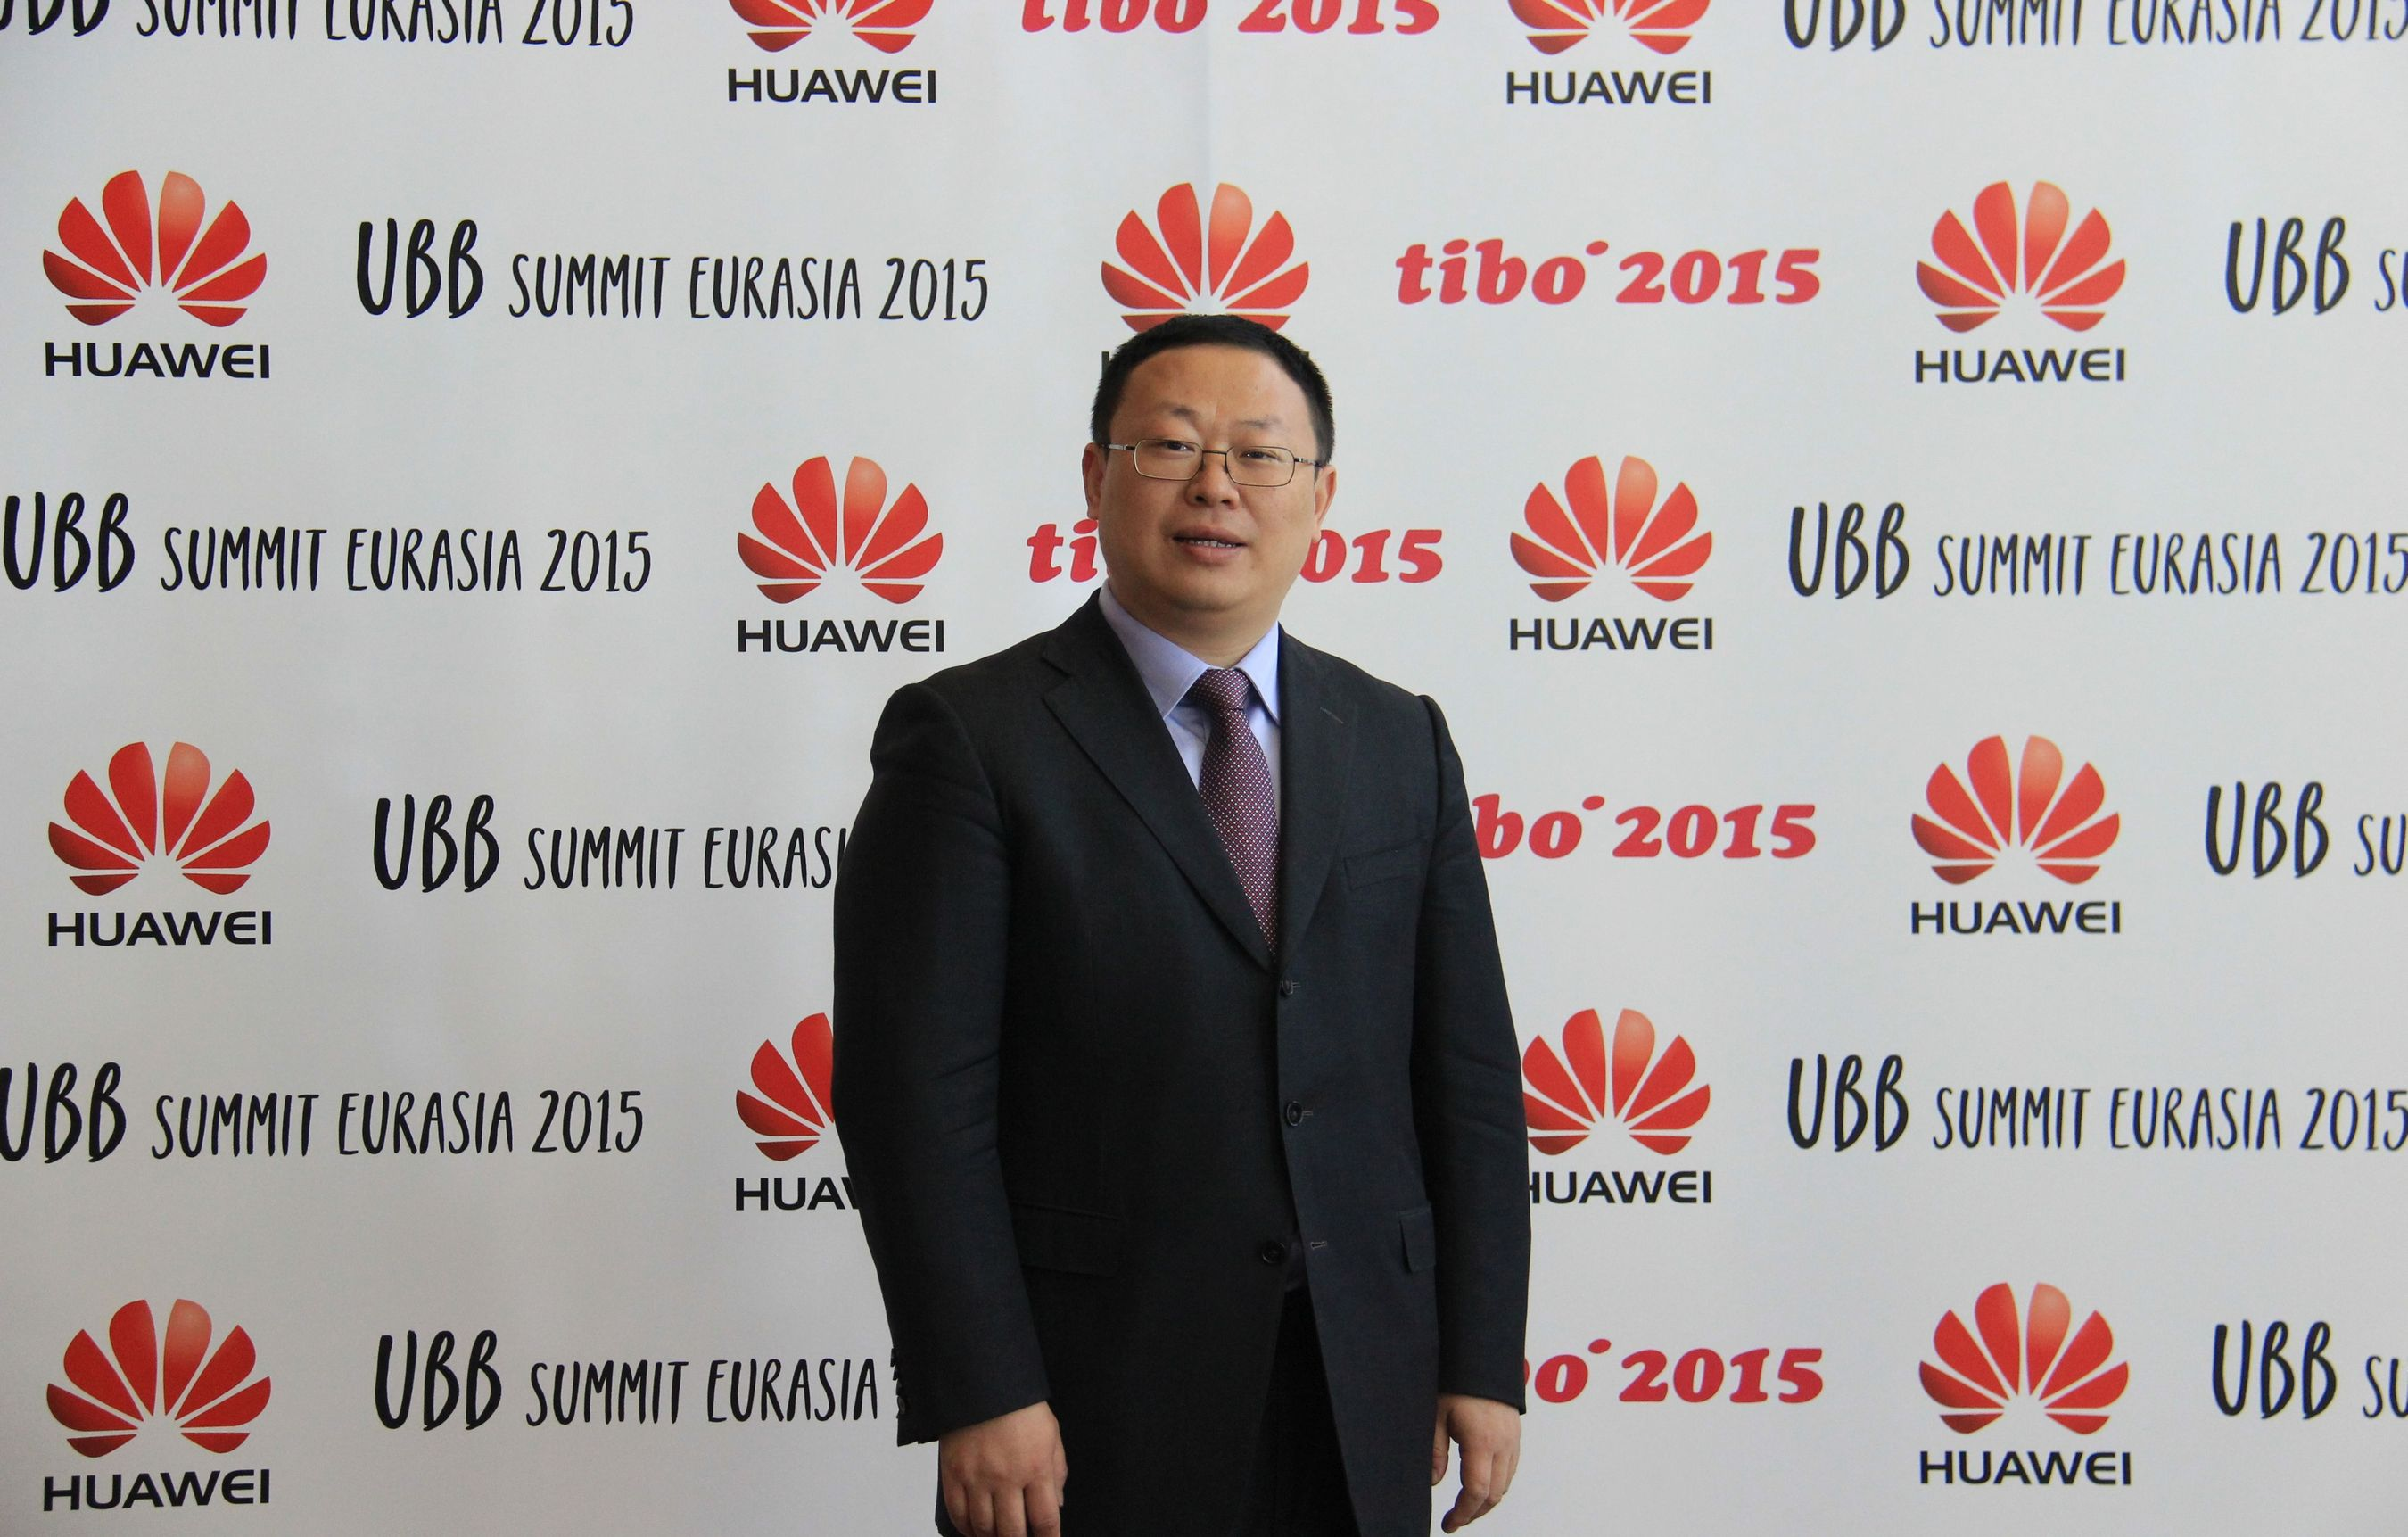 Huawei Hosts Eurasia UBB Summit with Belarusian Ministry of Communications and Information and Launches Innovative ICT Solutions at TIBO 2015